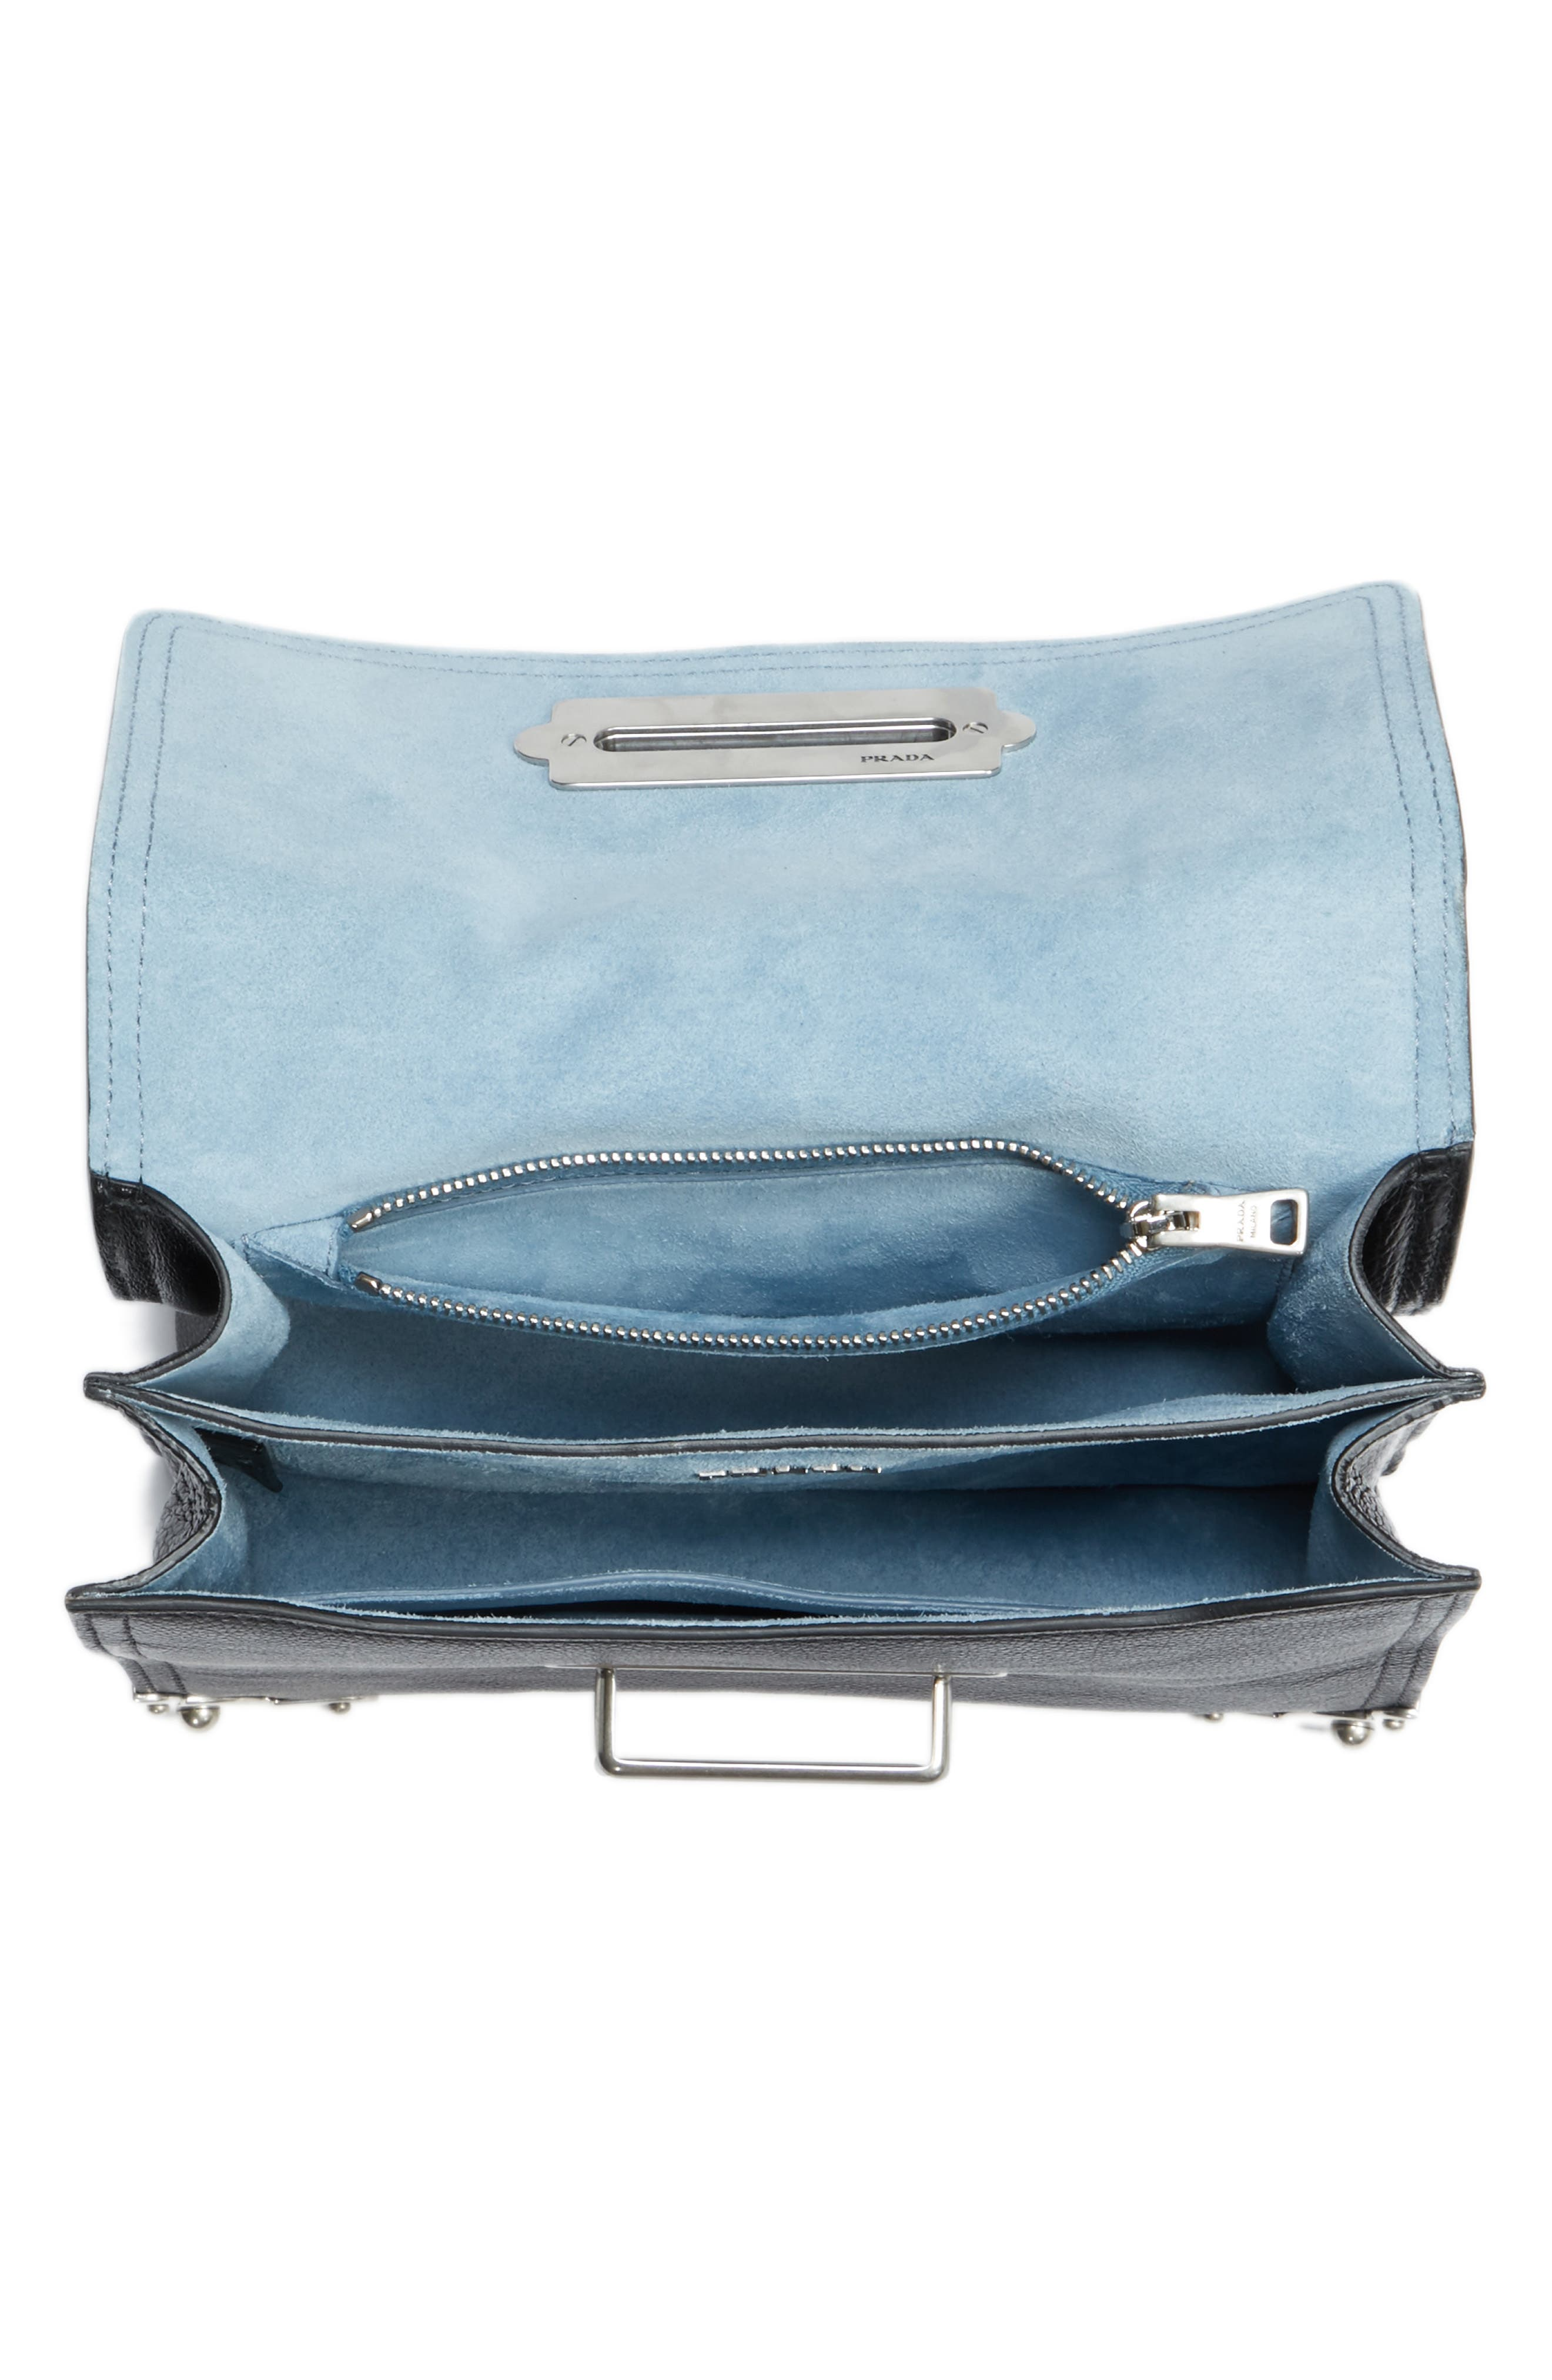 PRADA,                             Cahier Glace Calfskin Convertible Shoulder Bag,                             Alternate thumbnail 4, color,                             001